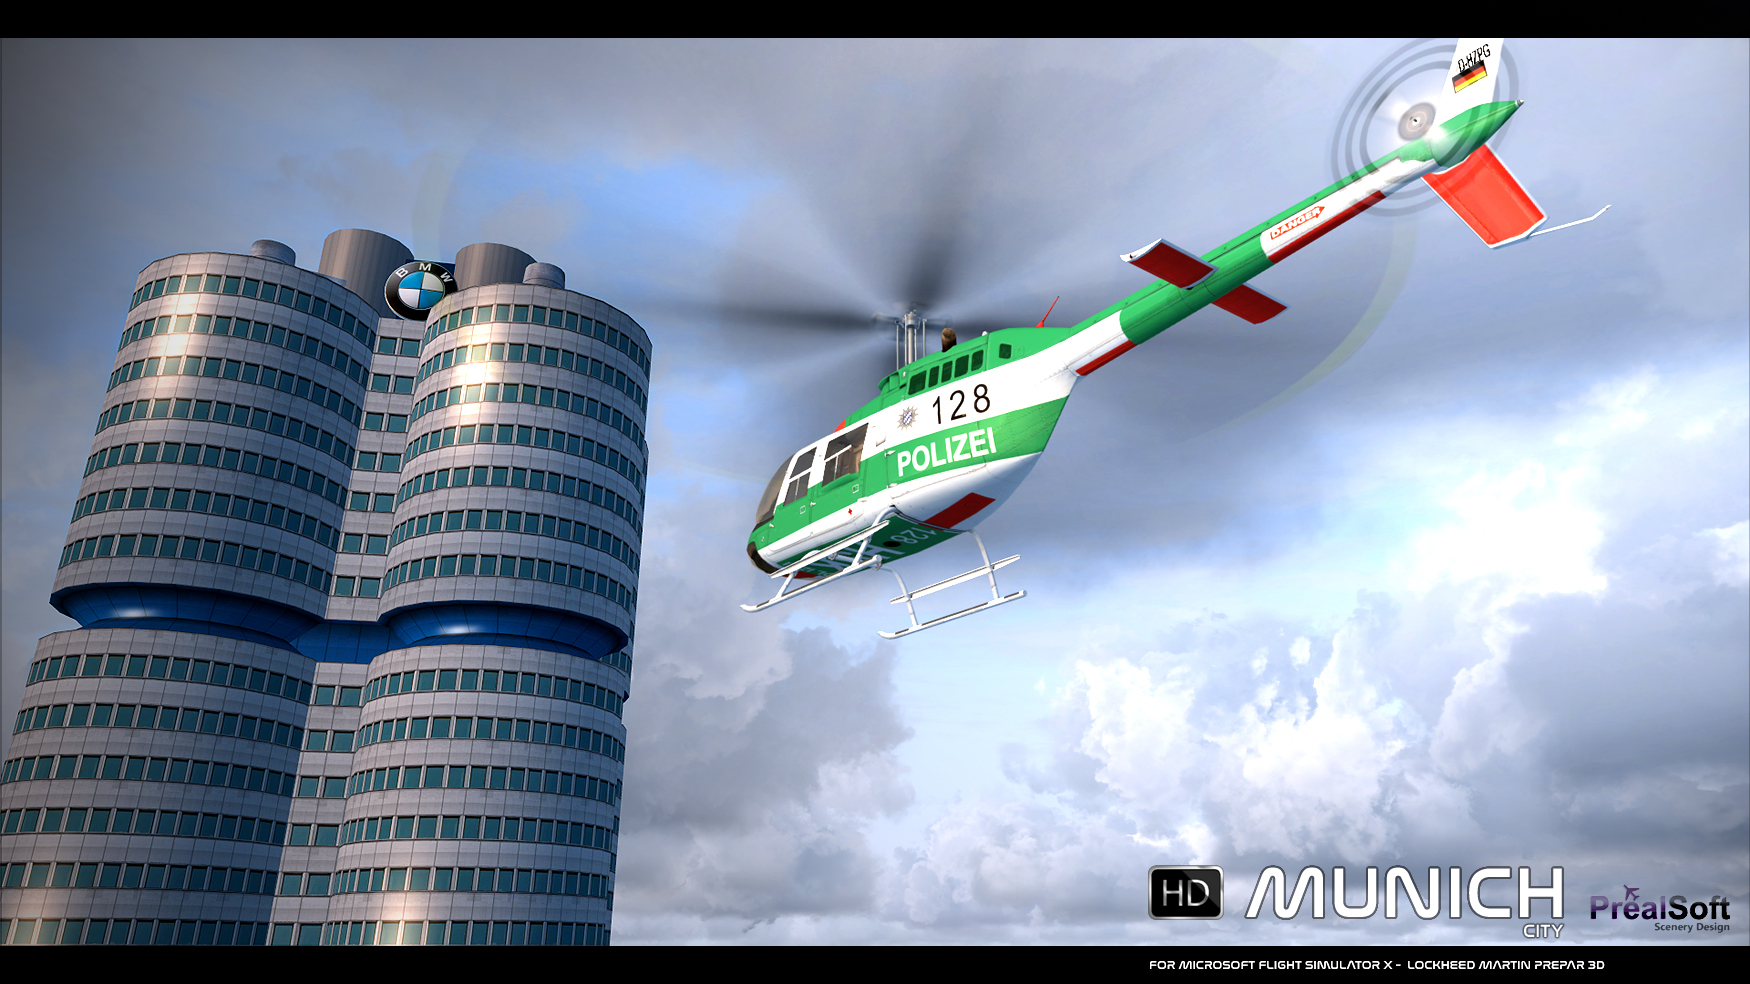 PREALSOFT - HD CITIES - MUNICH - AUTOGEN FSX P3D